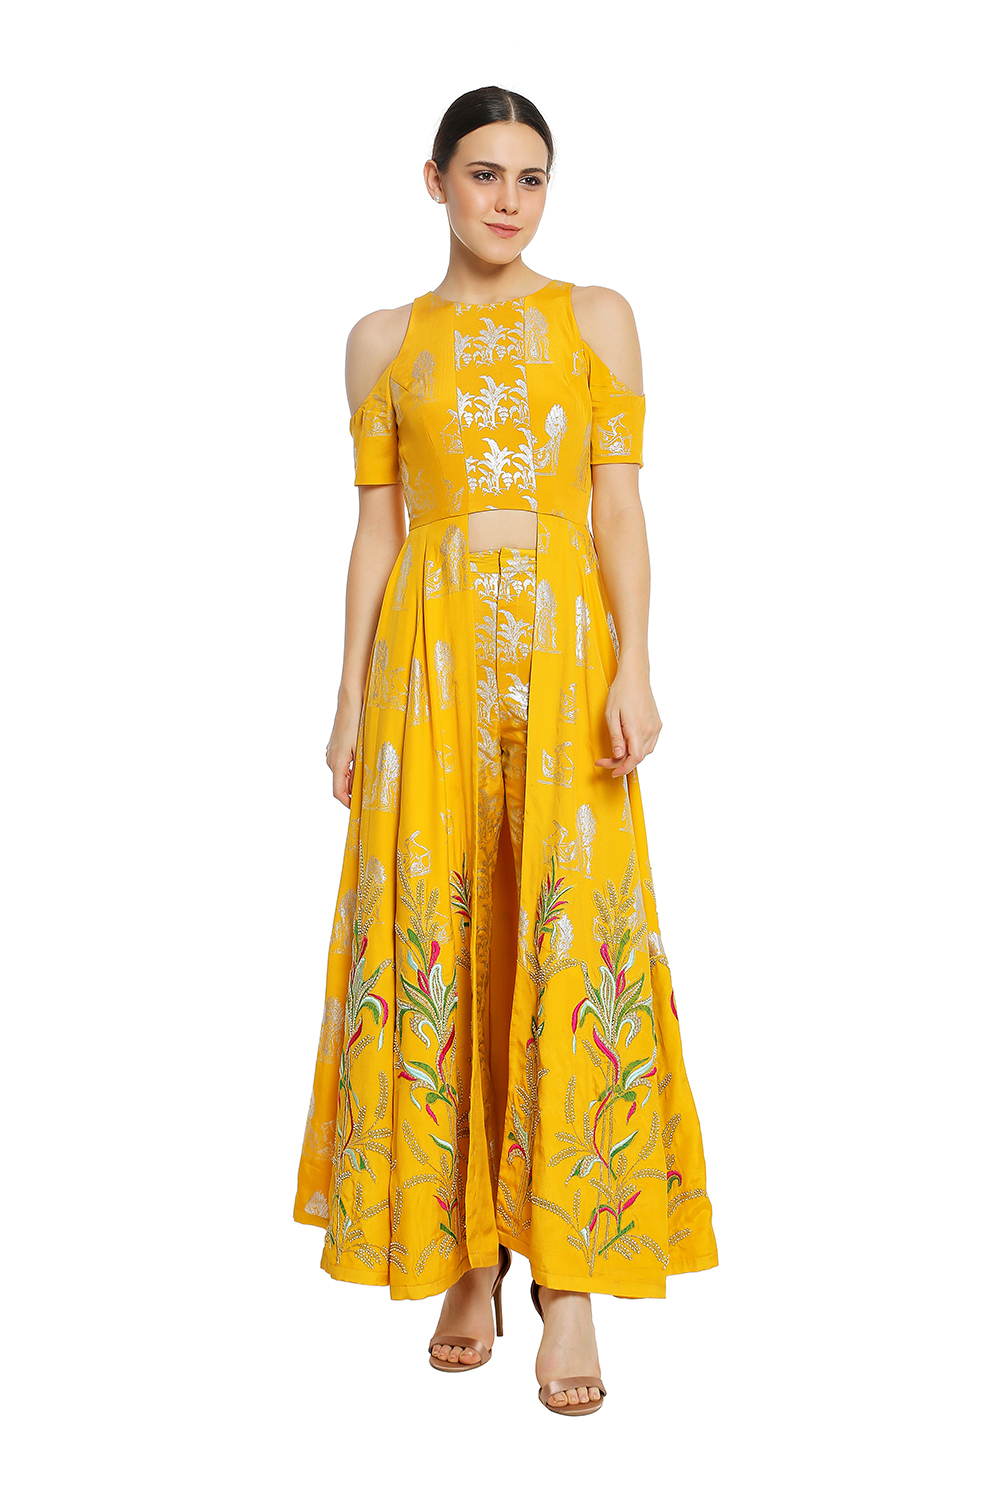 b634bf31f4 Indian, Yellow Tulip Embroidered Tunic With Yellow Tropical Banana ...